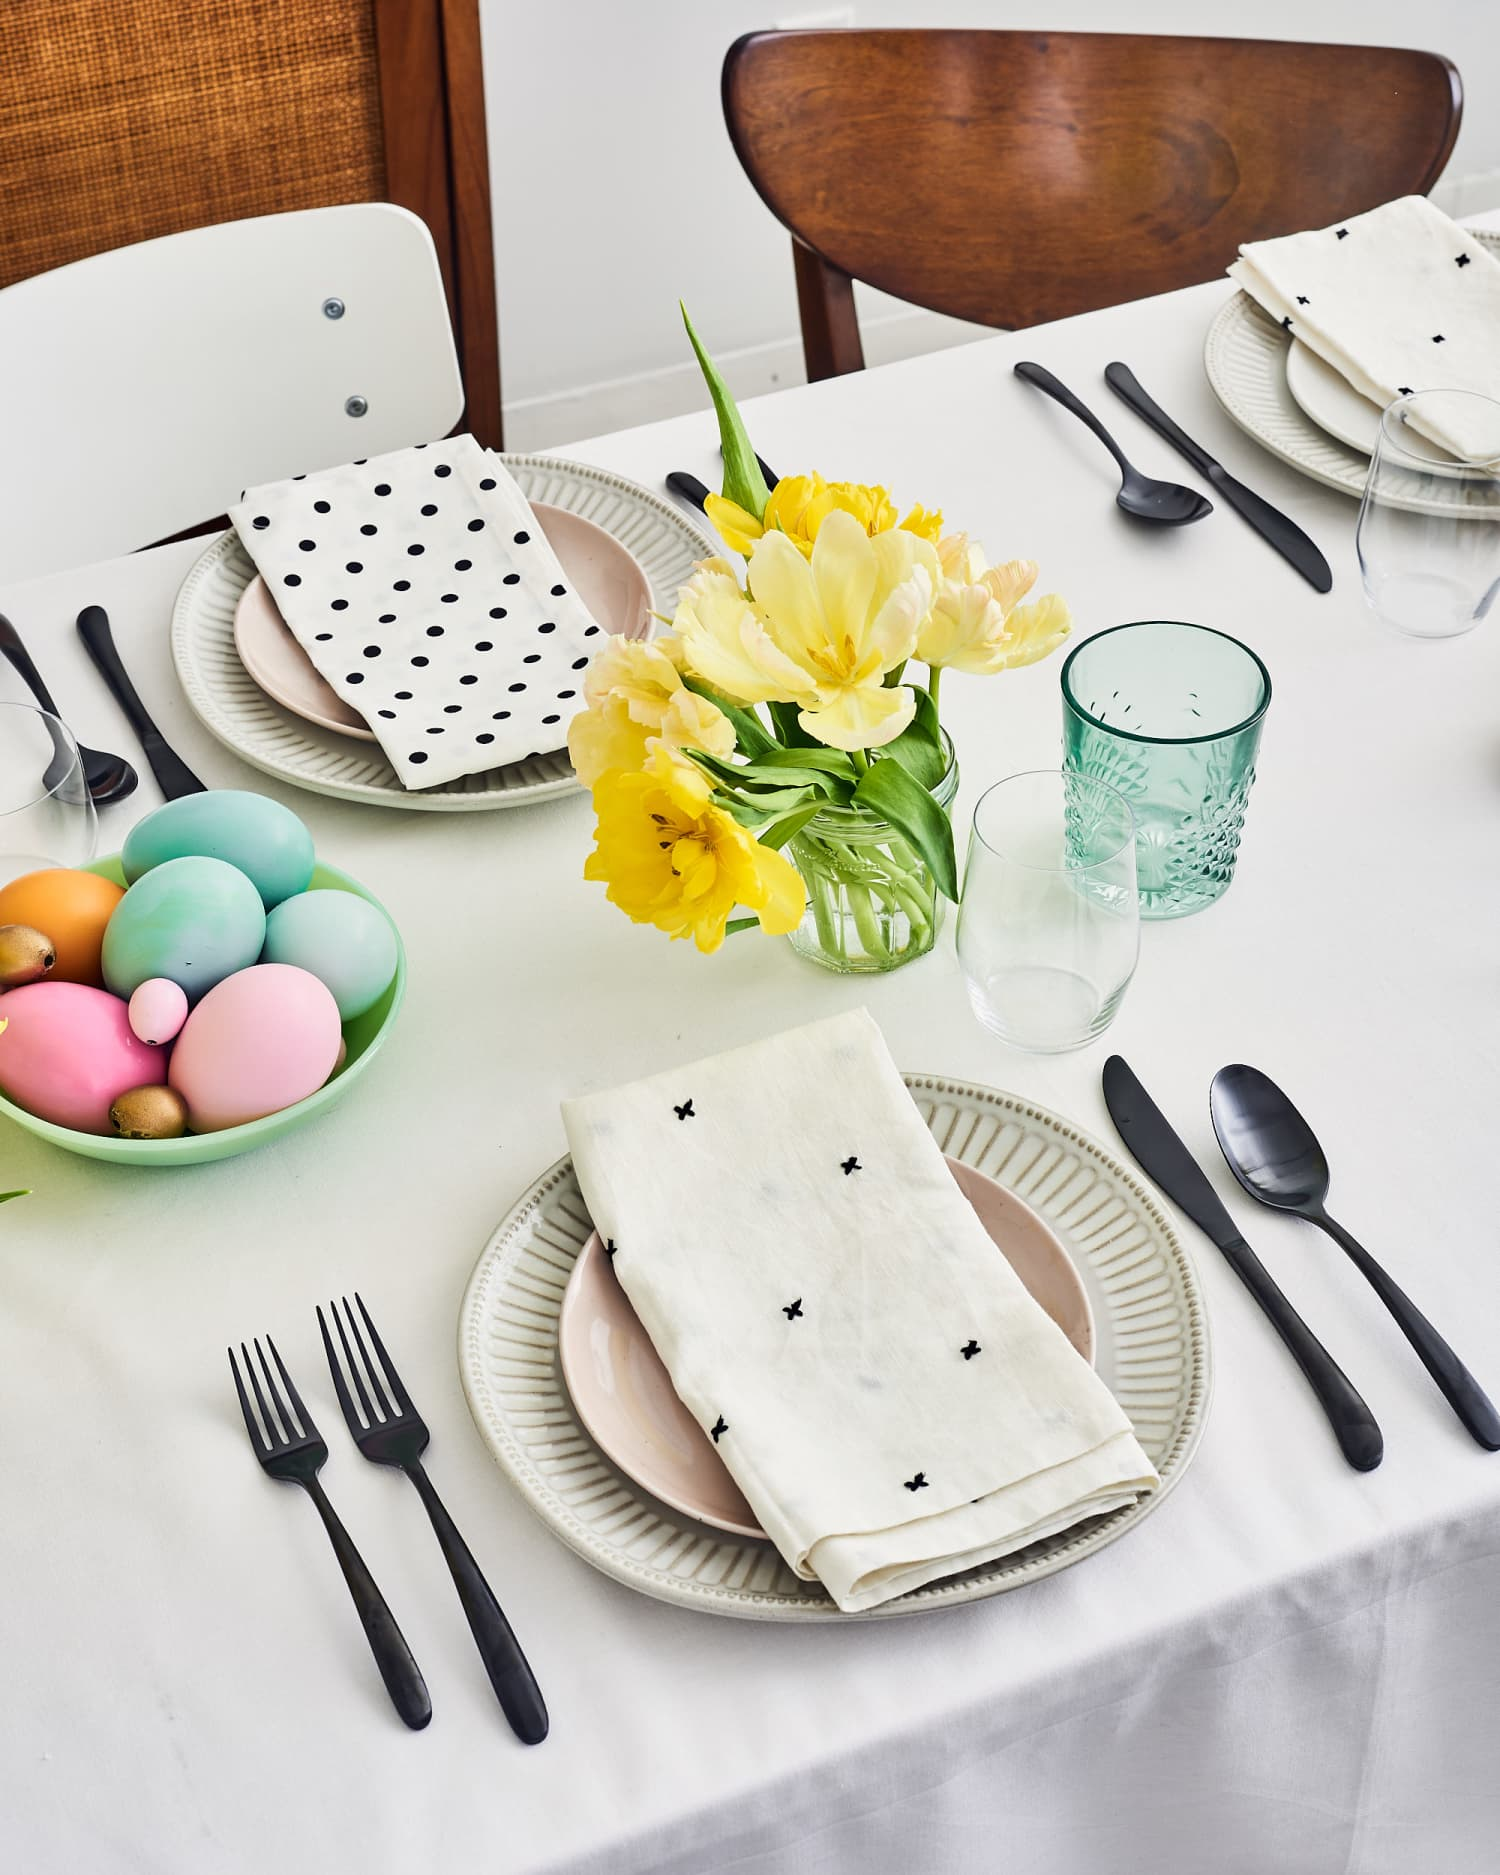 How to Cook a Small (but Wonderful) Easter Dinner